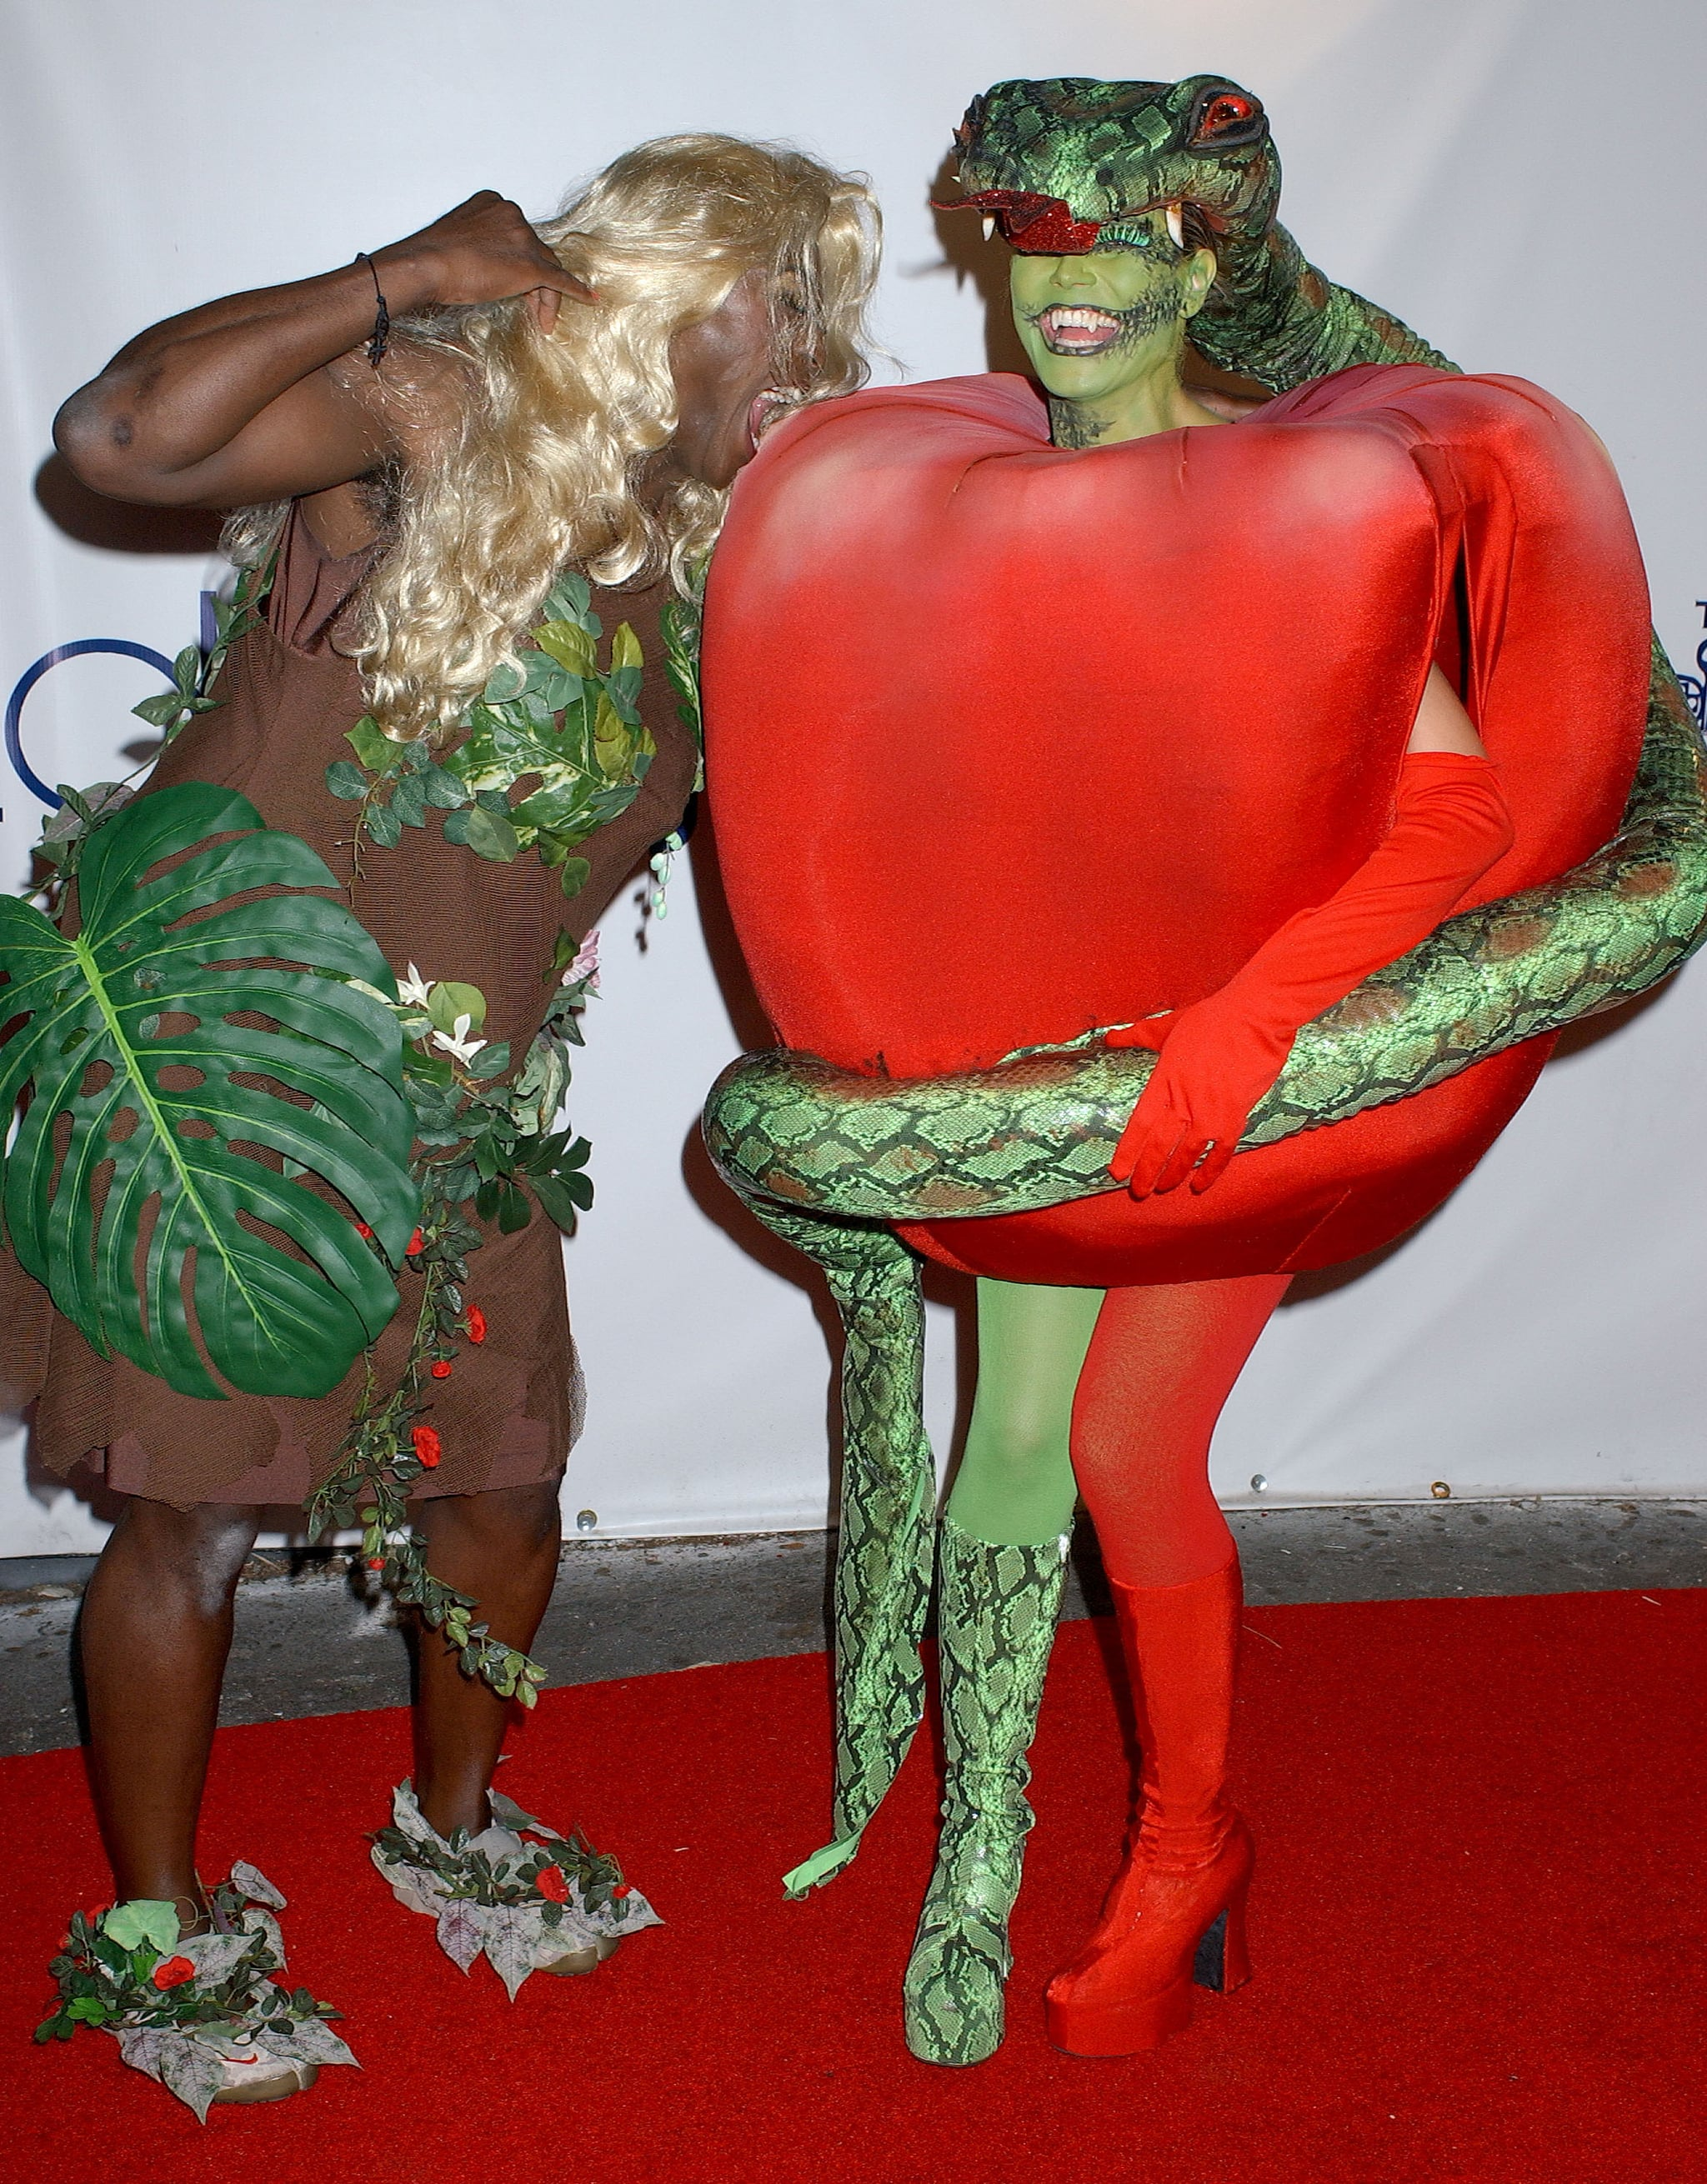 Heidi Klum Seal Halloween Costume.Heidi Klum And Seal 350 Celebrity Halloween Costumes That Are Hilarious Spooky And Downright Stylish Popsugar Celebrity Photo 272